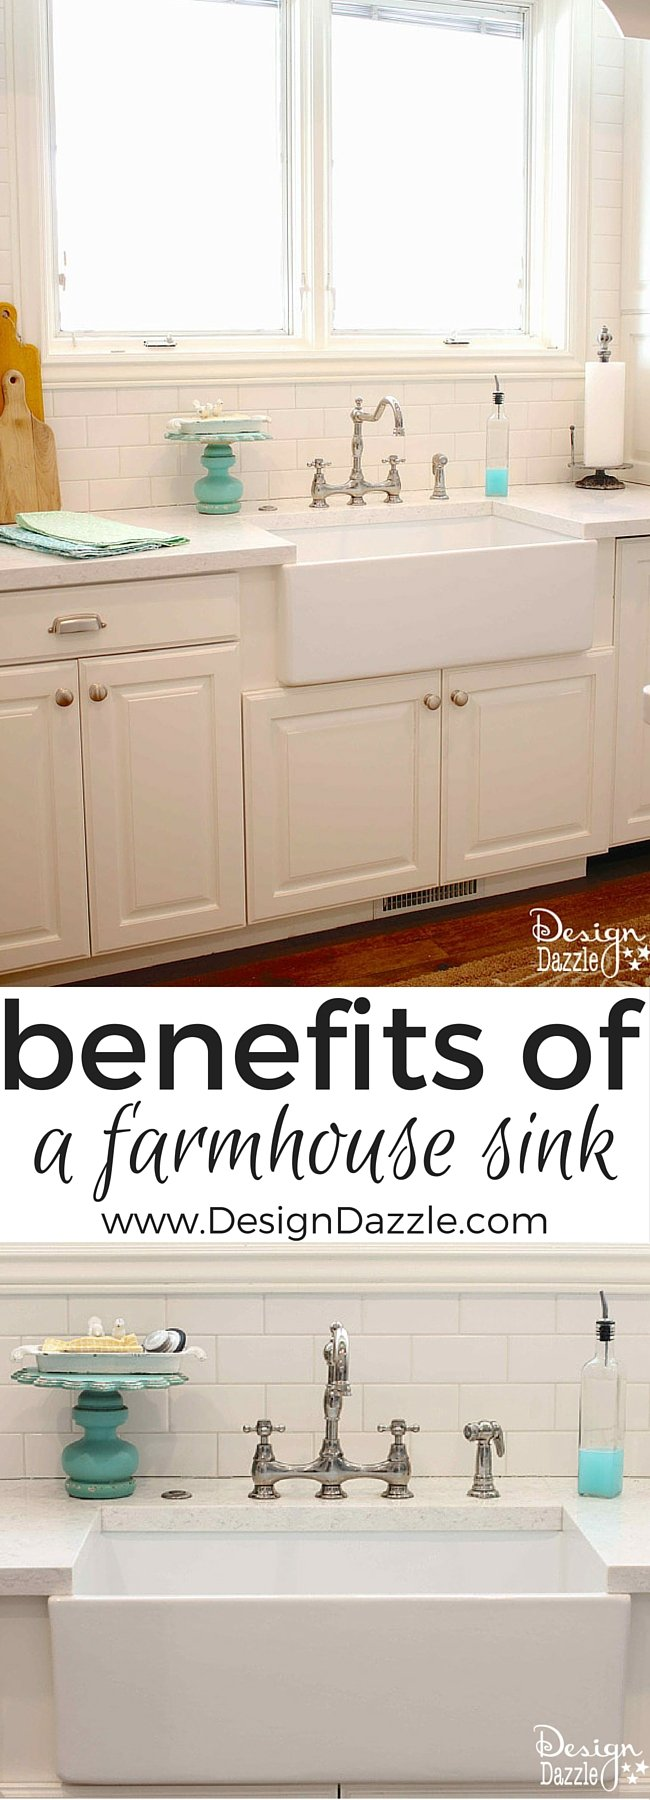 Farmhouse Sink Depth : our farmhouse sink from Home Depot! I research lots and lots of sinks ...